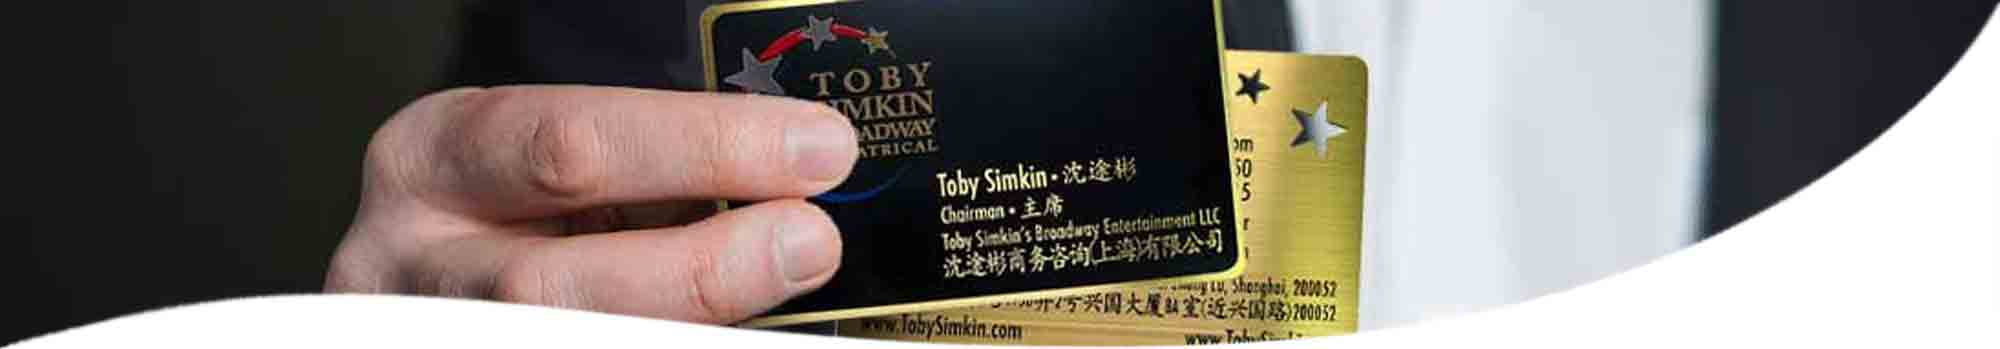 Contact Toby Simkin Broadway Entertainment 沈途彬 BroadwayProducer